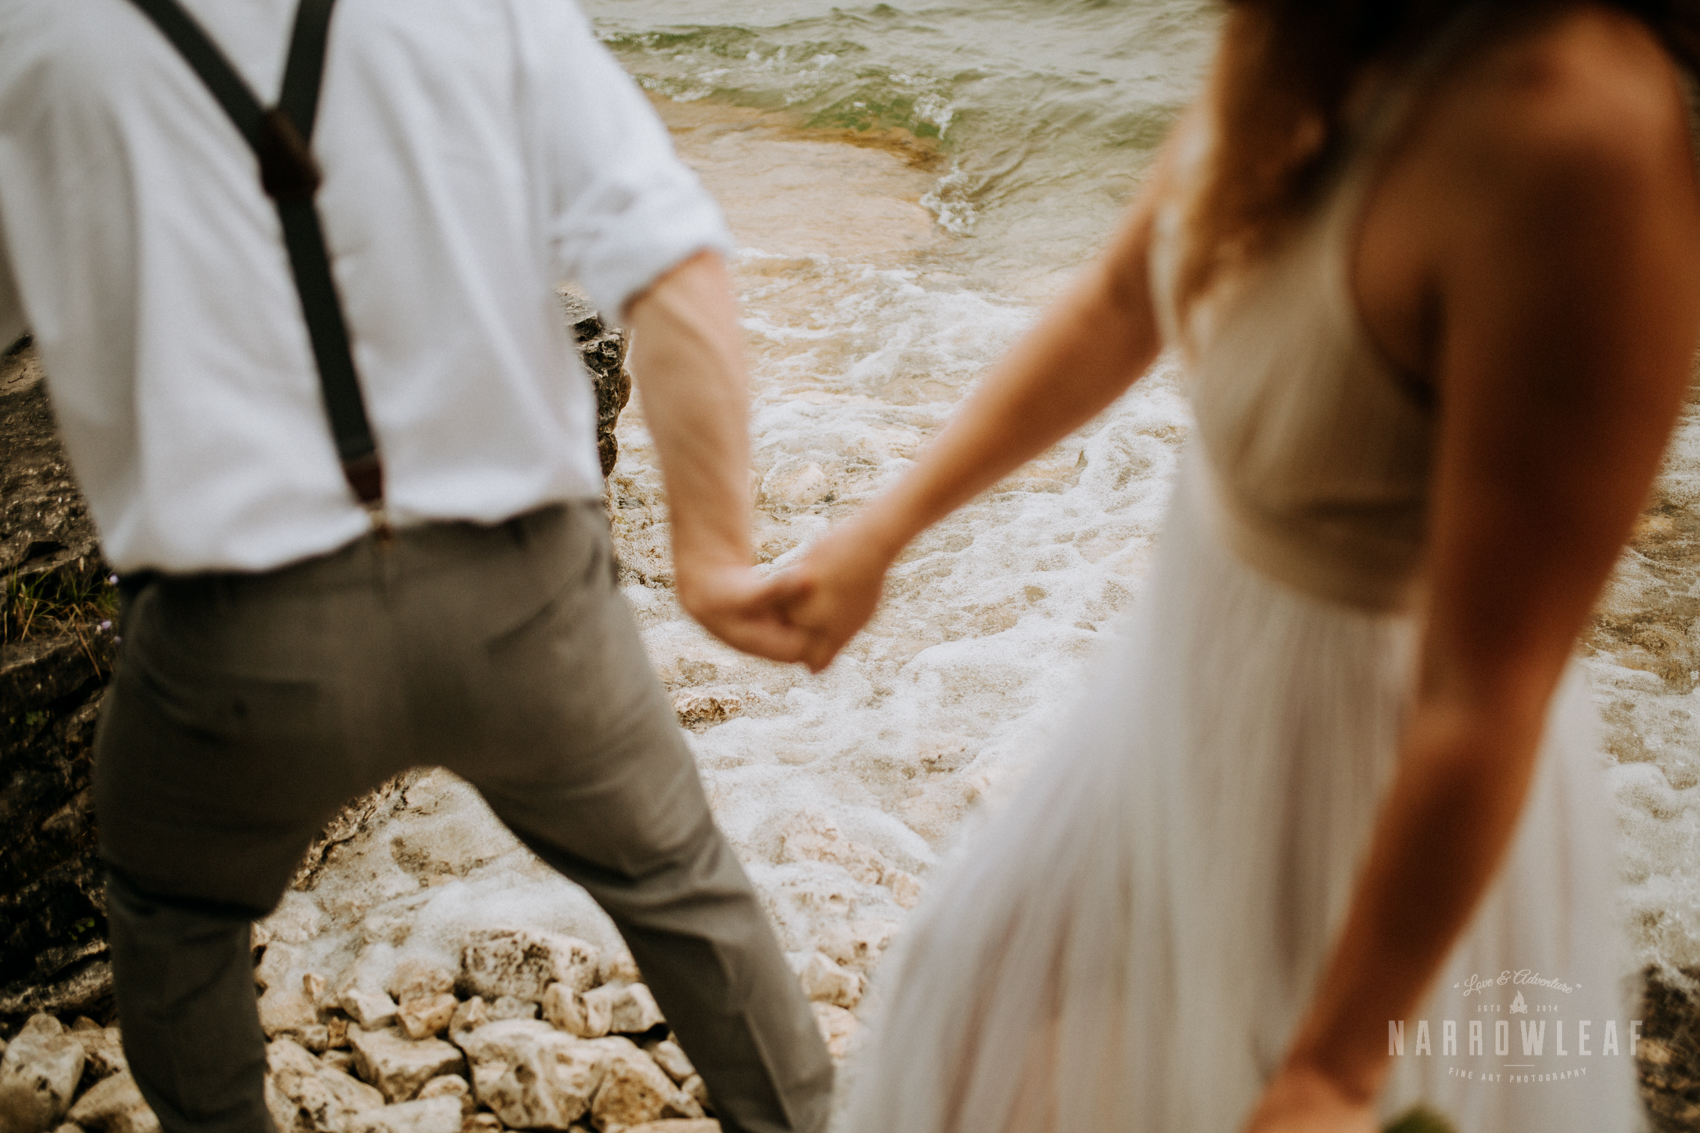 egg-harbor-elopement-lake-michigan-rockshore-Narrowleaf_Love_and_Adventure_Photography.jpg